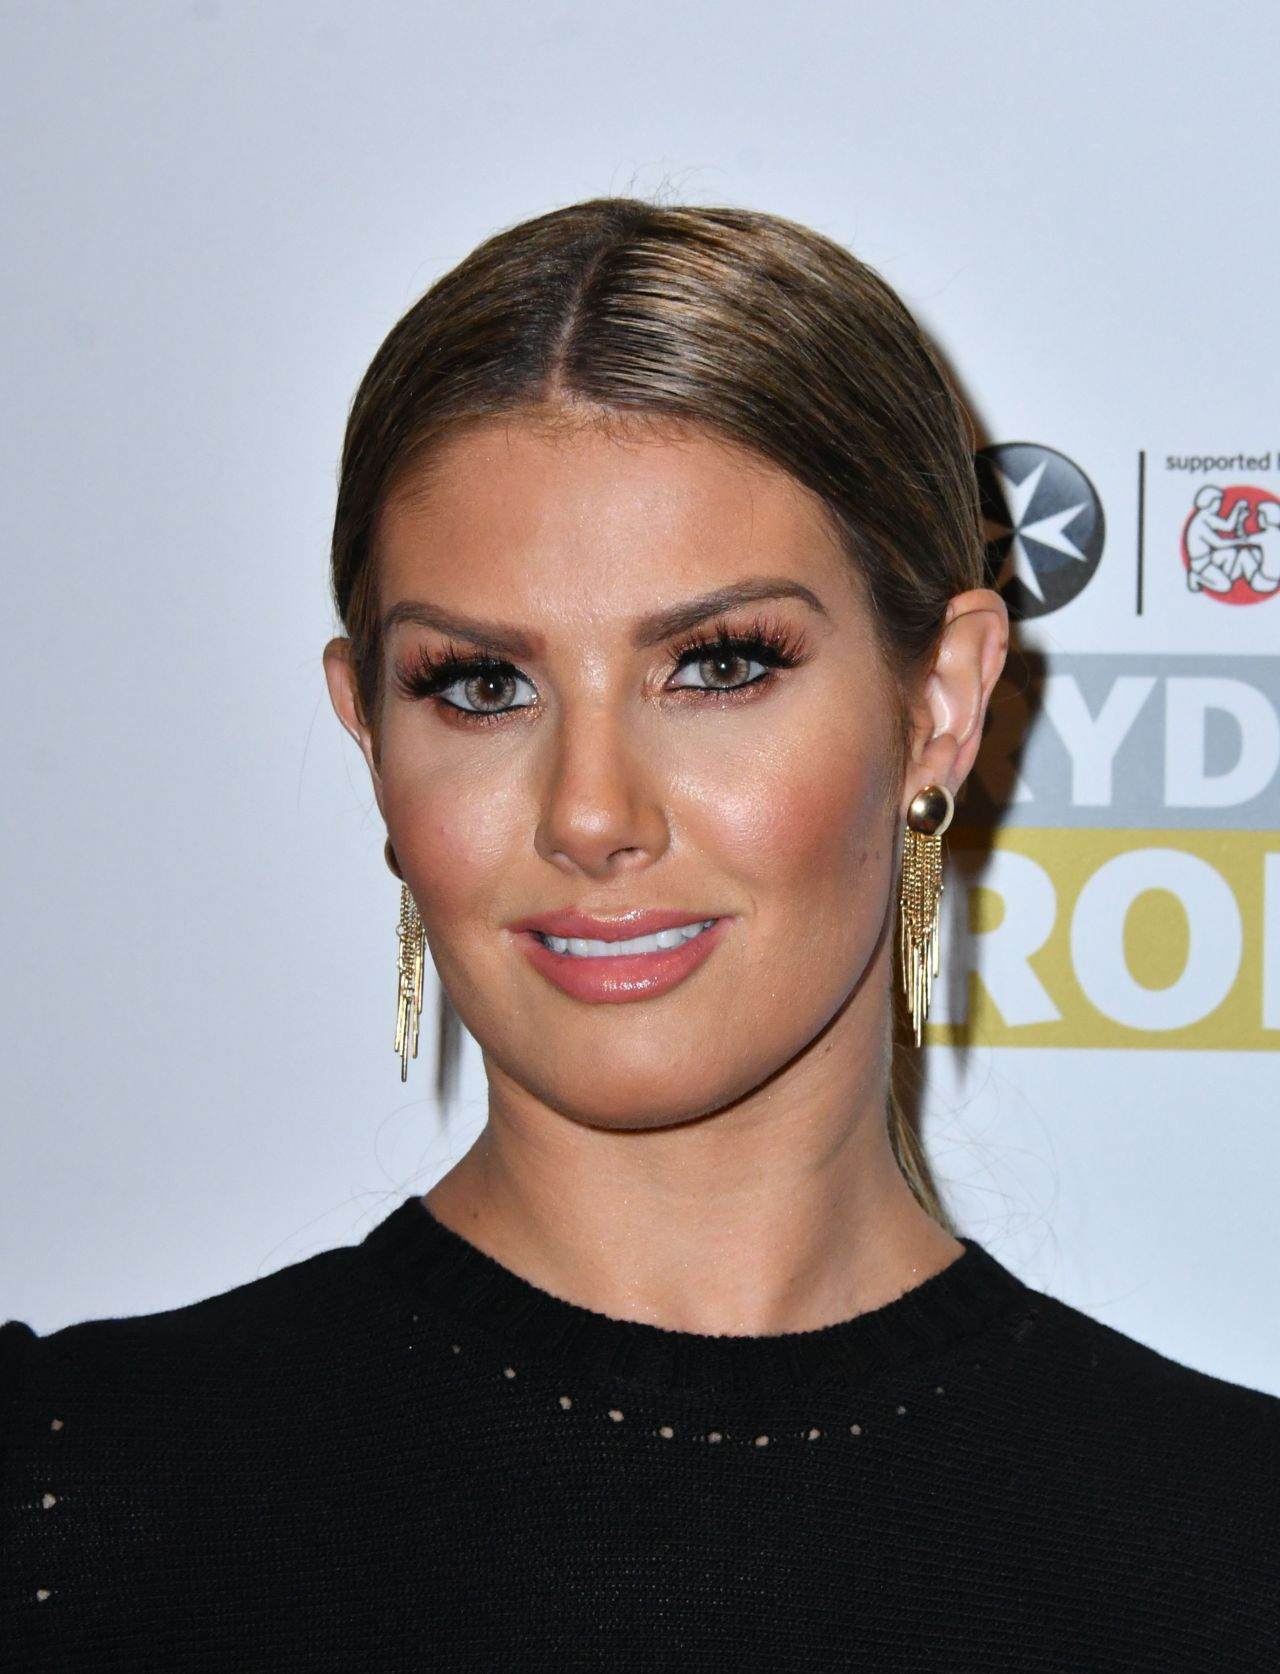 rebekah vardy - photo #11